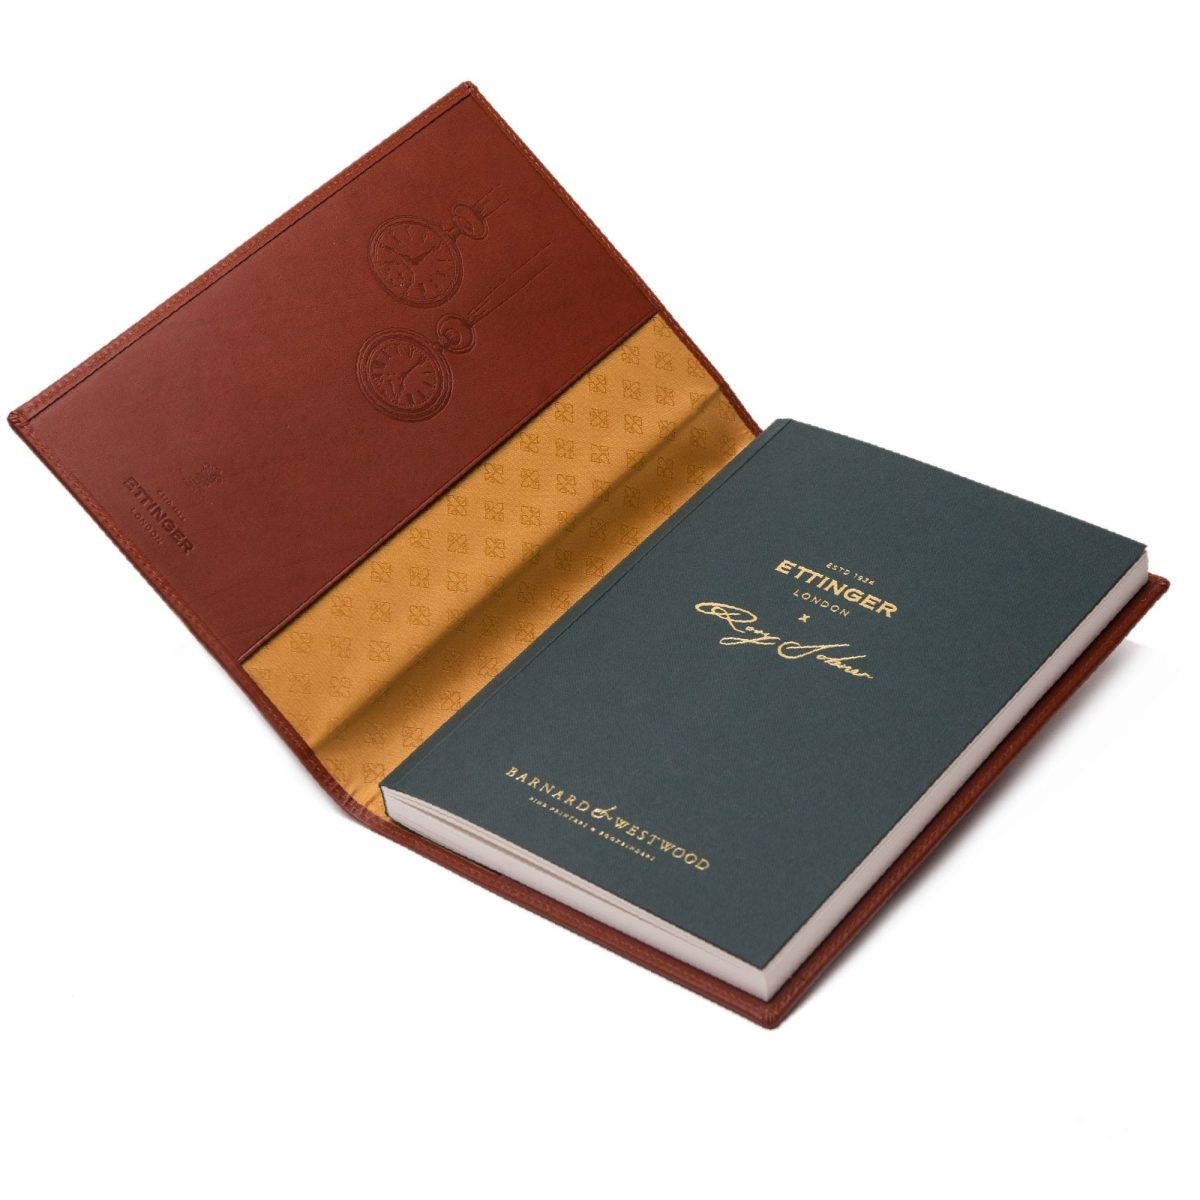 LIMITED EDITION ETTINGER X RORY DOBNER LEATHER COVERED NOTEBOOK